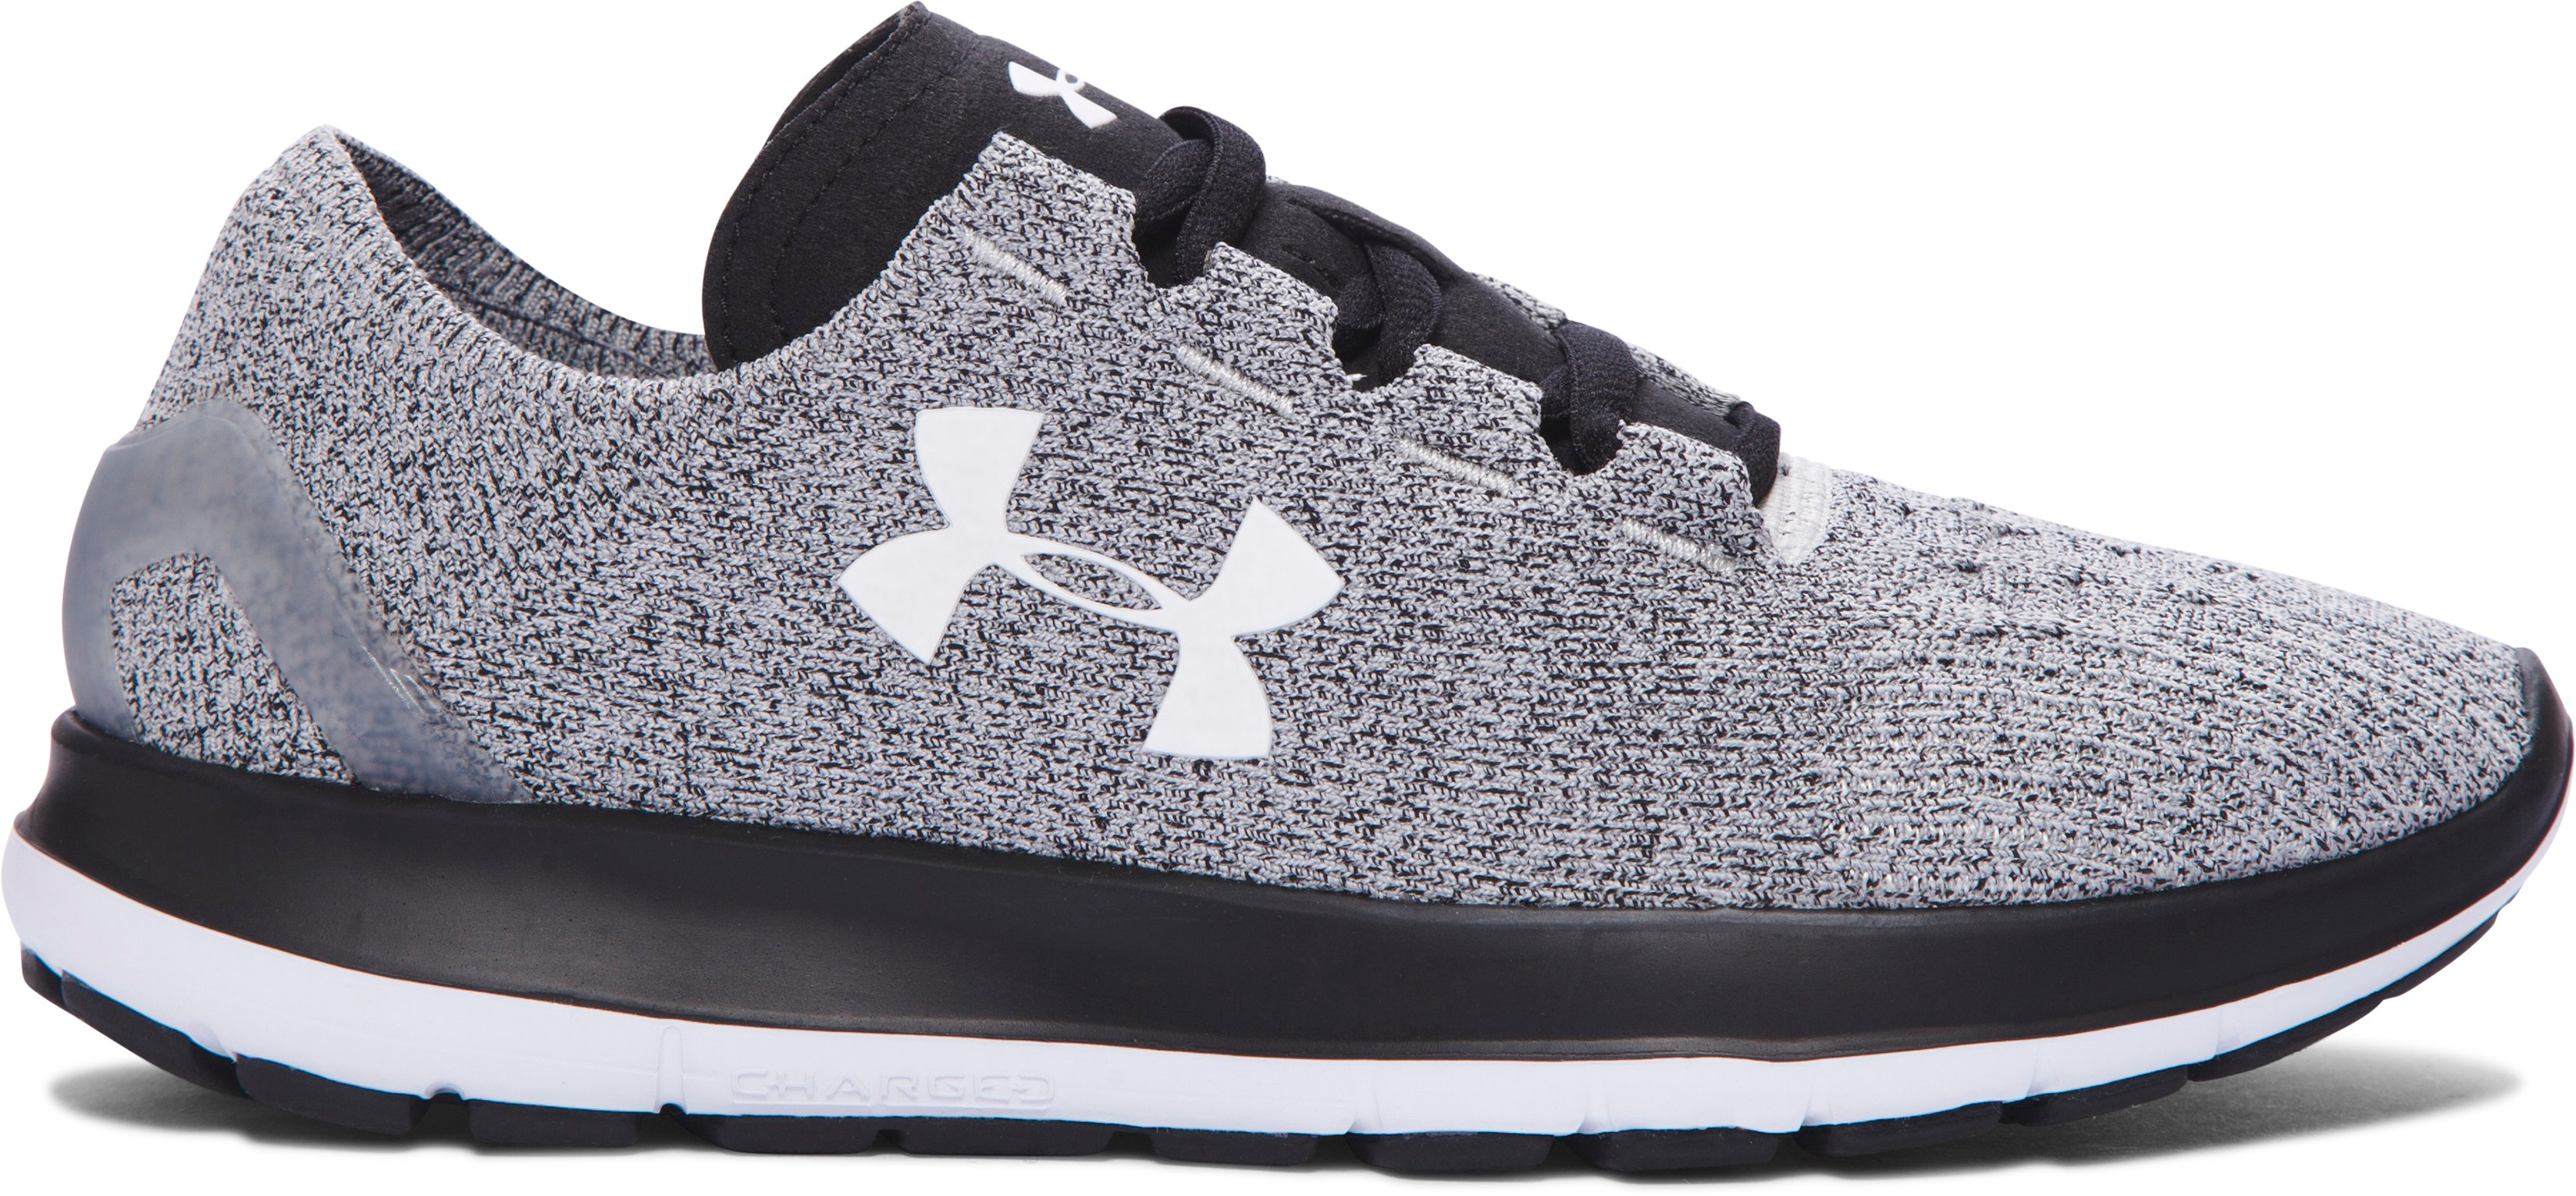 Unique Under Armour Women39s Micro G Mantis Running Shoes  Under